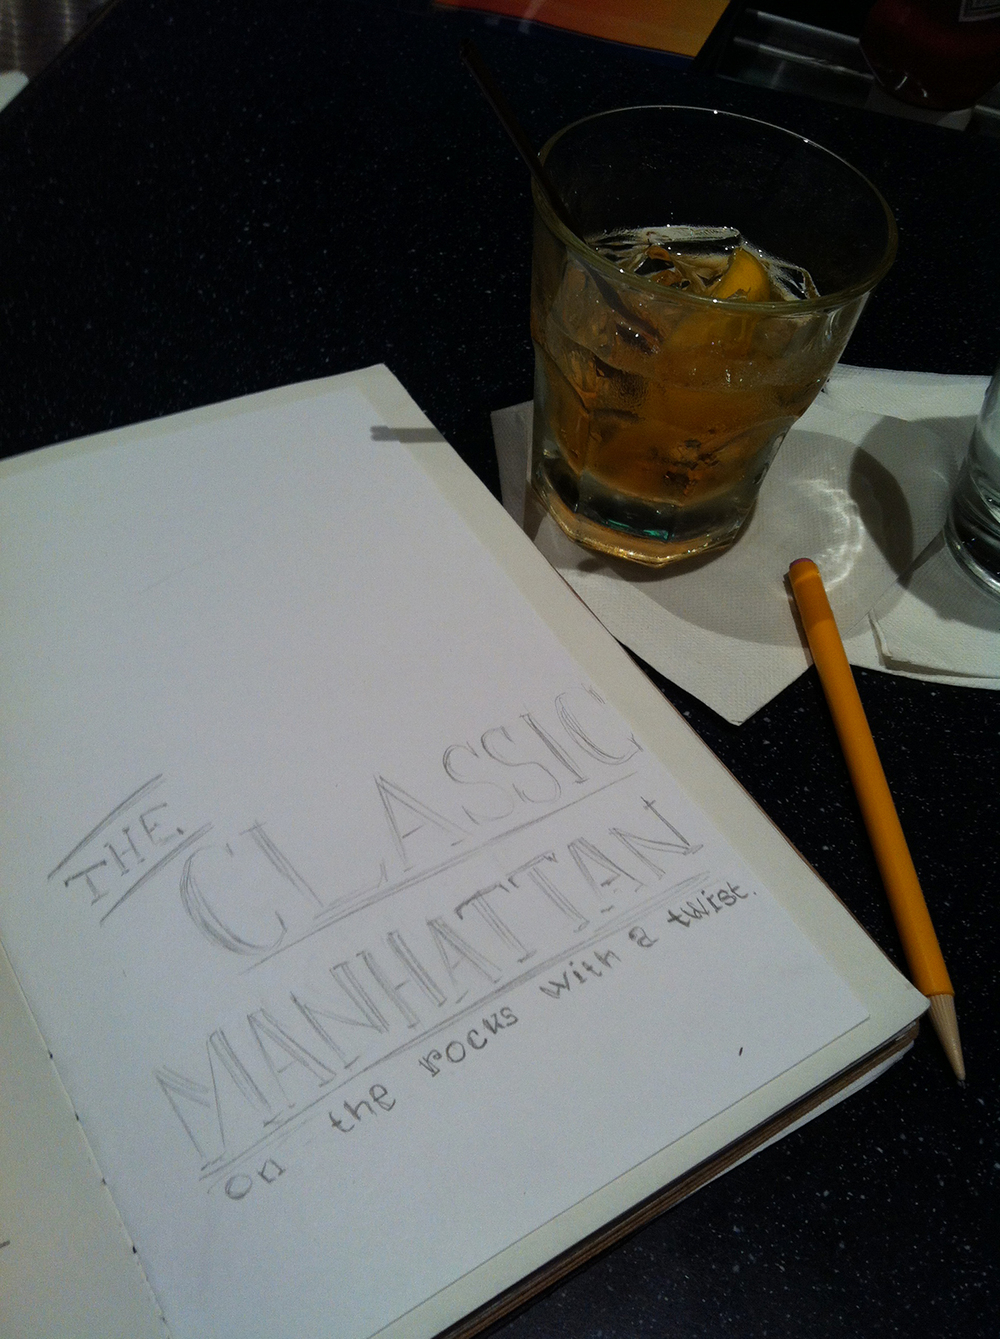 May 23 :  Doodling at the airport bar. Heading back to Mass for a long weekend.